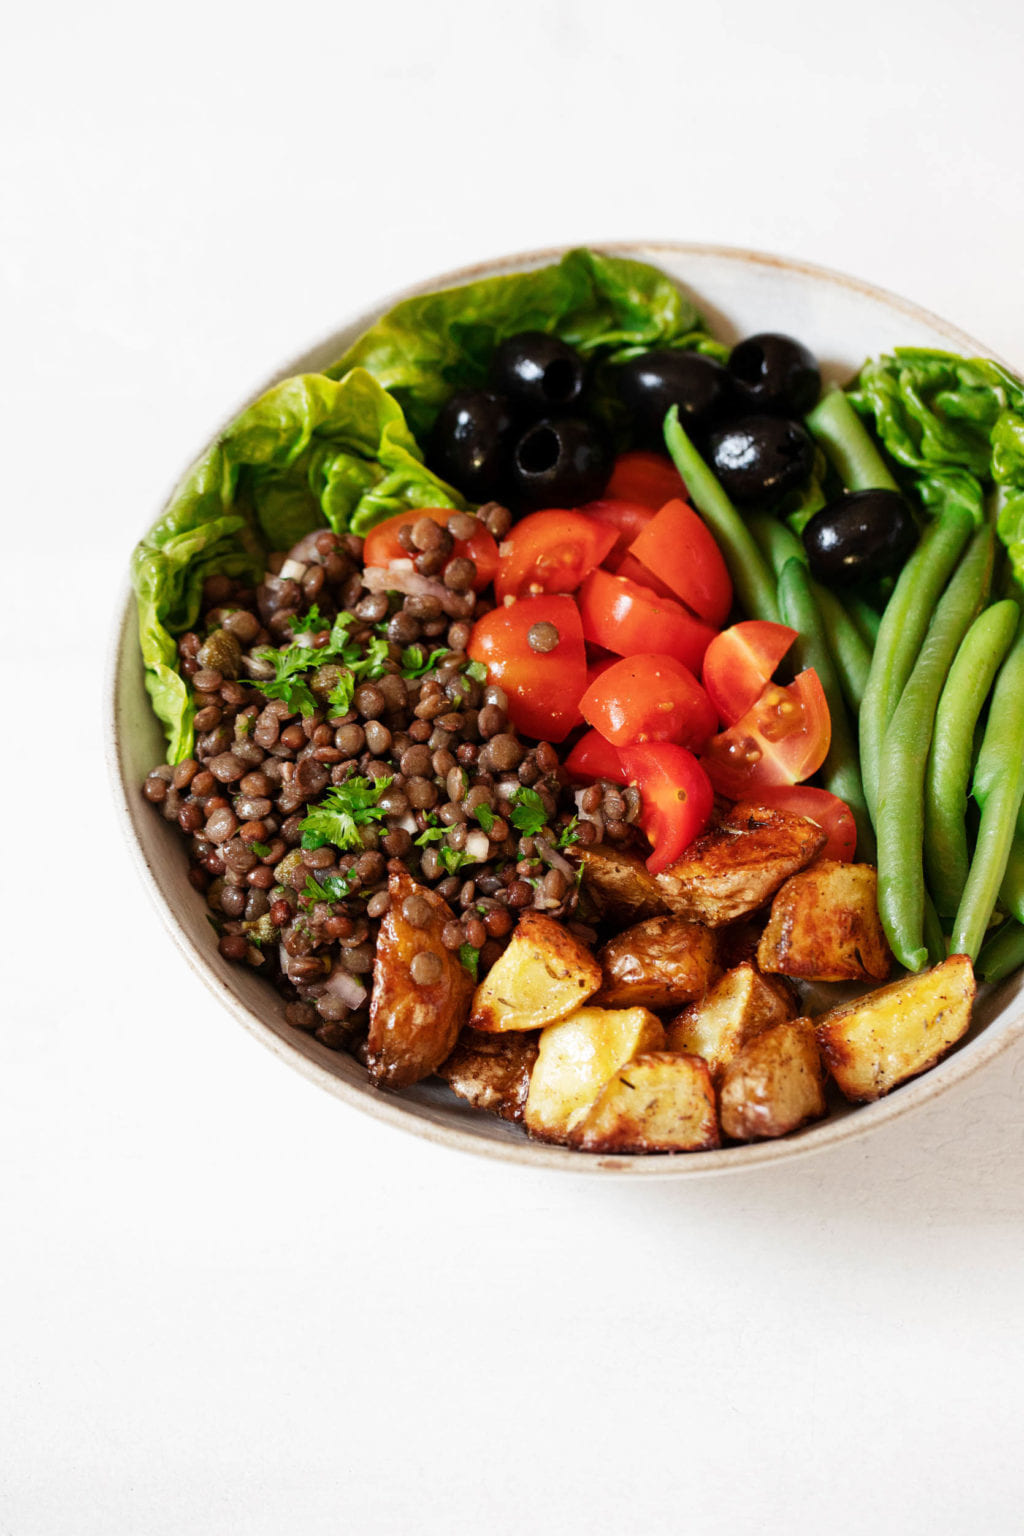 A white bowl was filled with cooked French lentils, baked potatoes, tomatoes, olives and green beans.